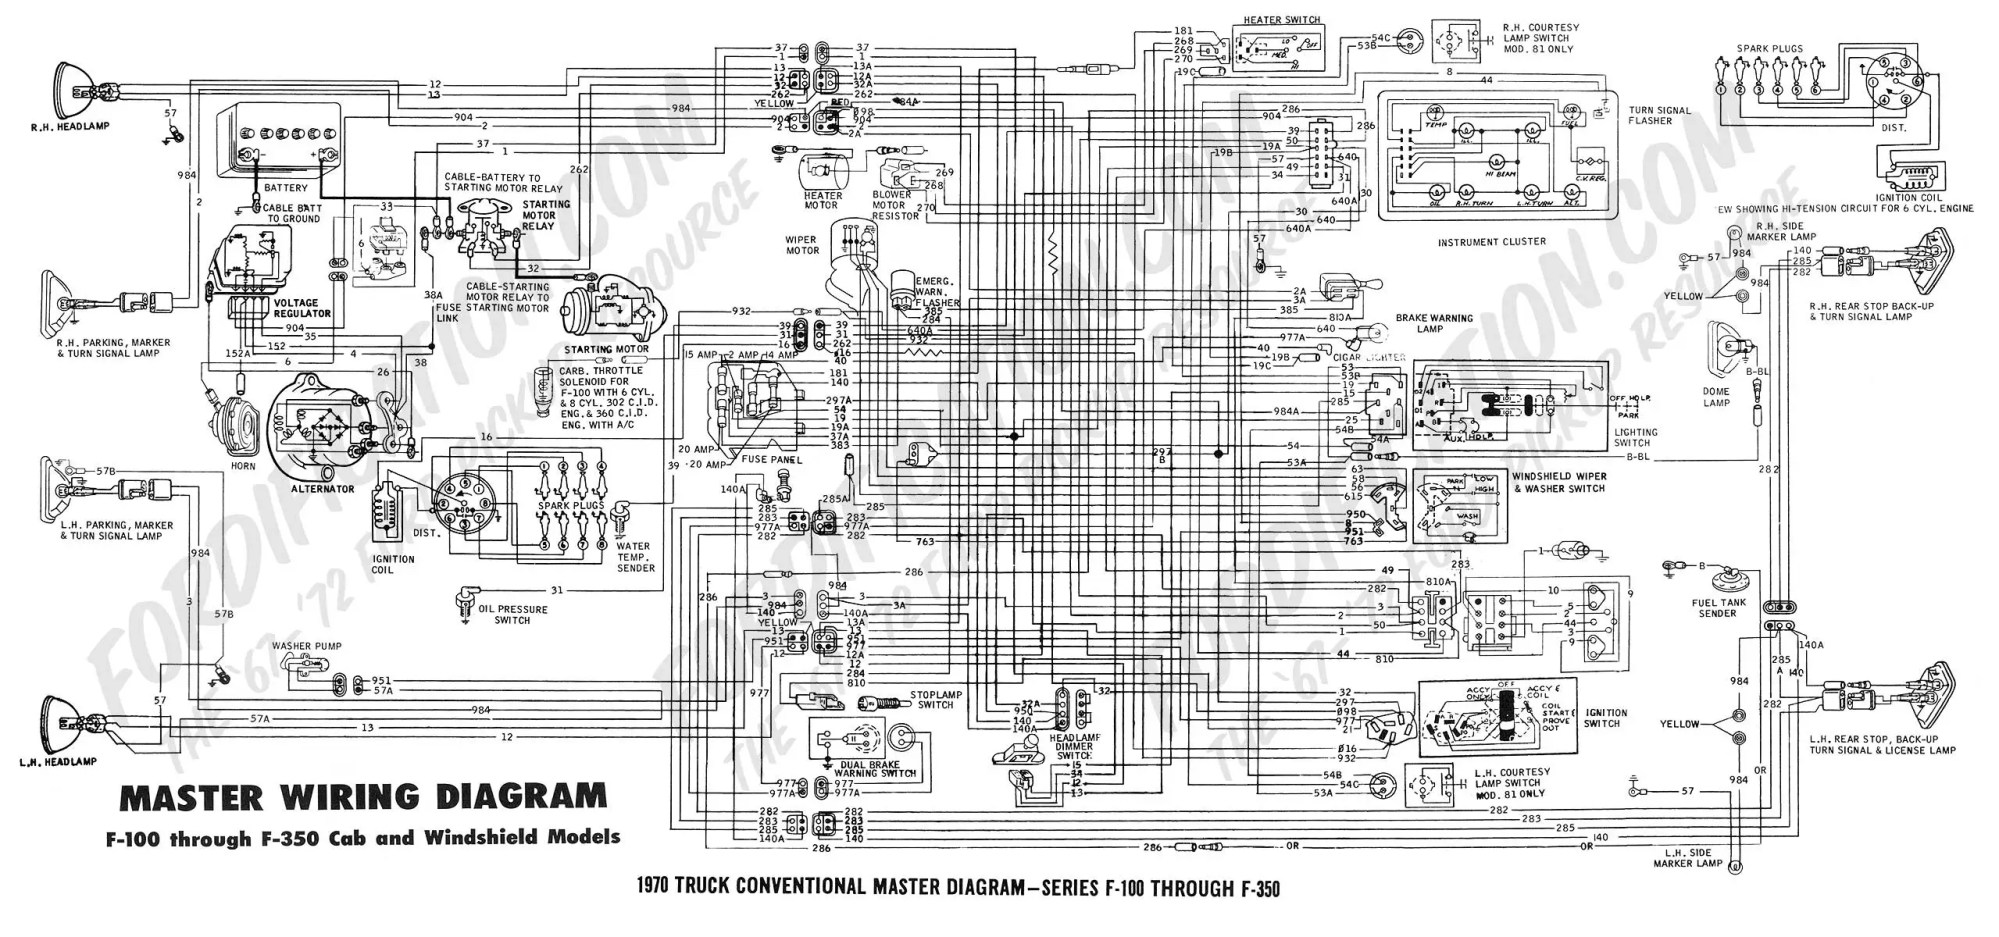 hight resolution of ford f350 wiring schematic wiring diagram img 2005 ford expedition wiring diagram 2005 f350 wiring diagram